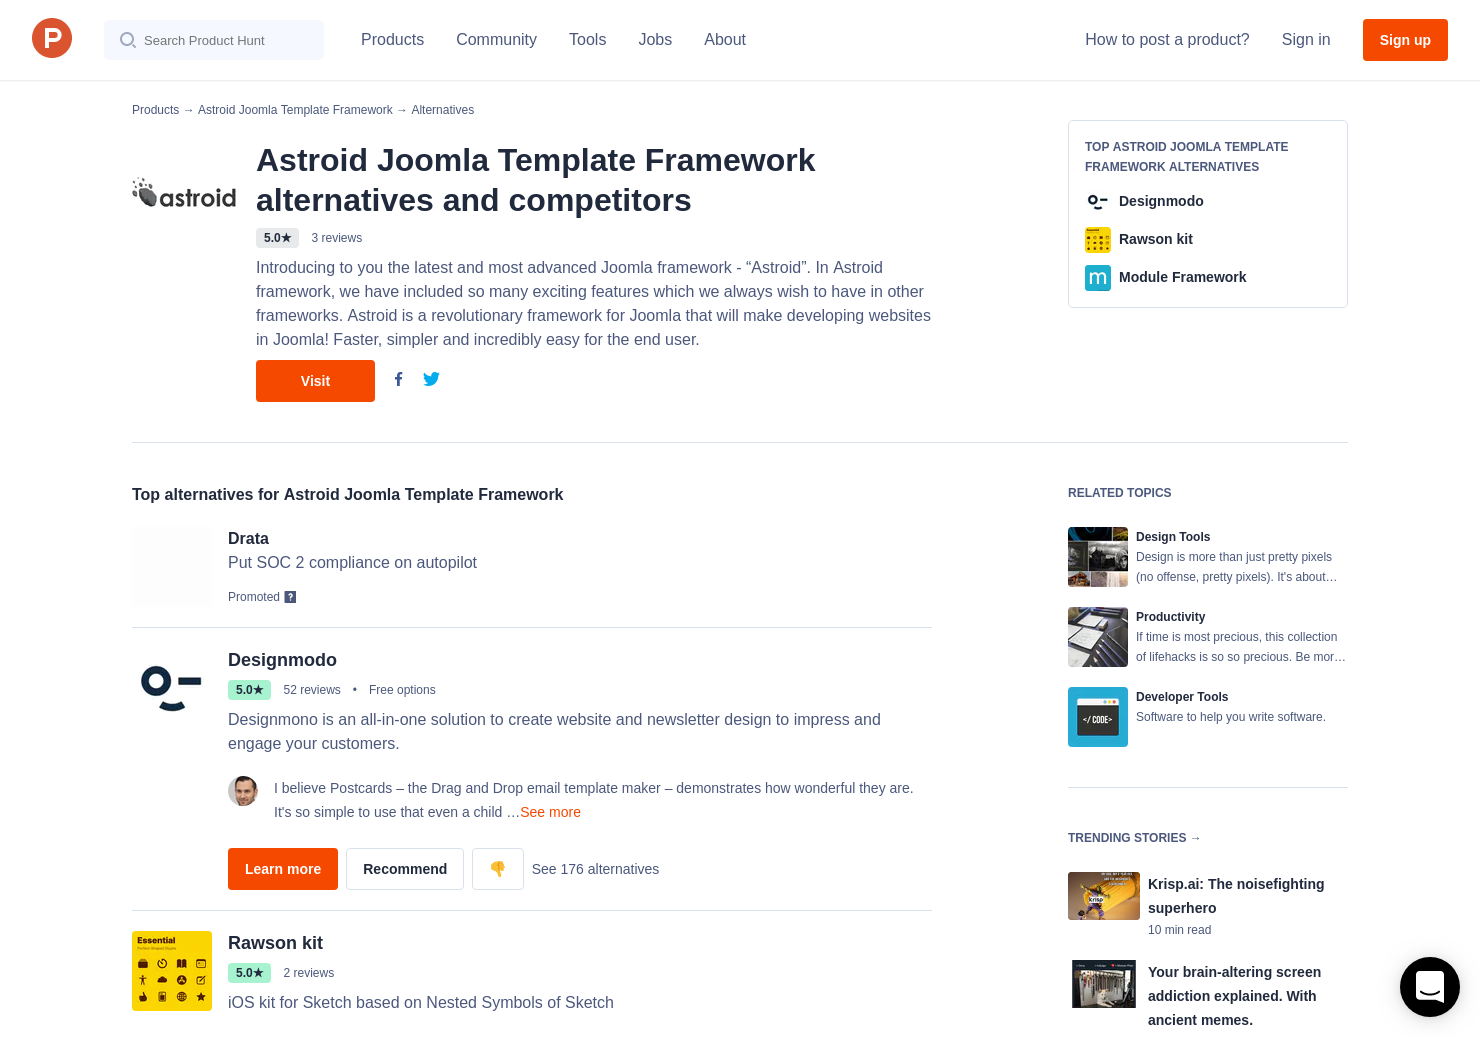 8 Alternatives to Astroid Joomla Template Framework - Product Hunt